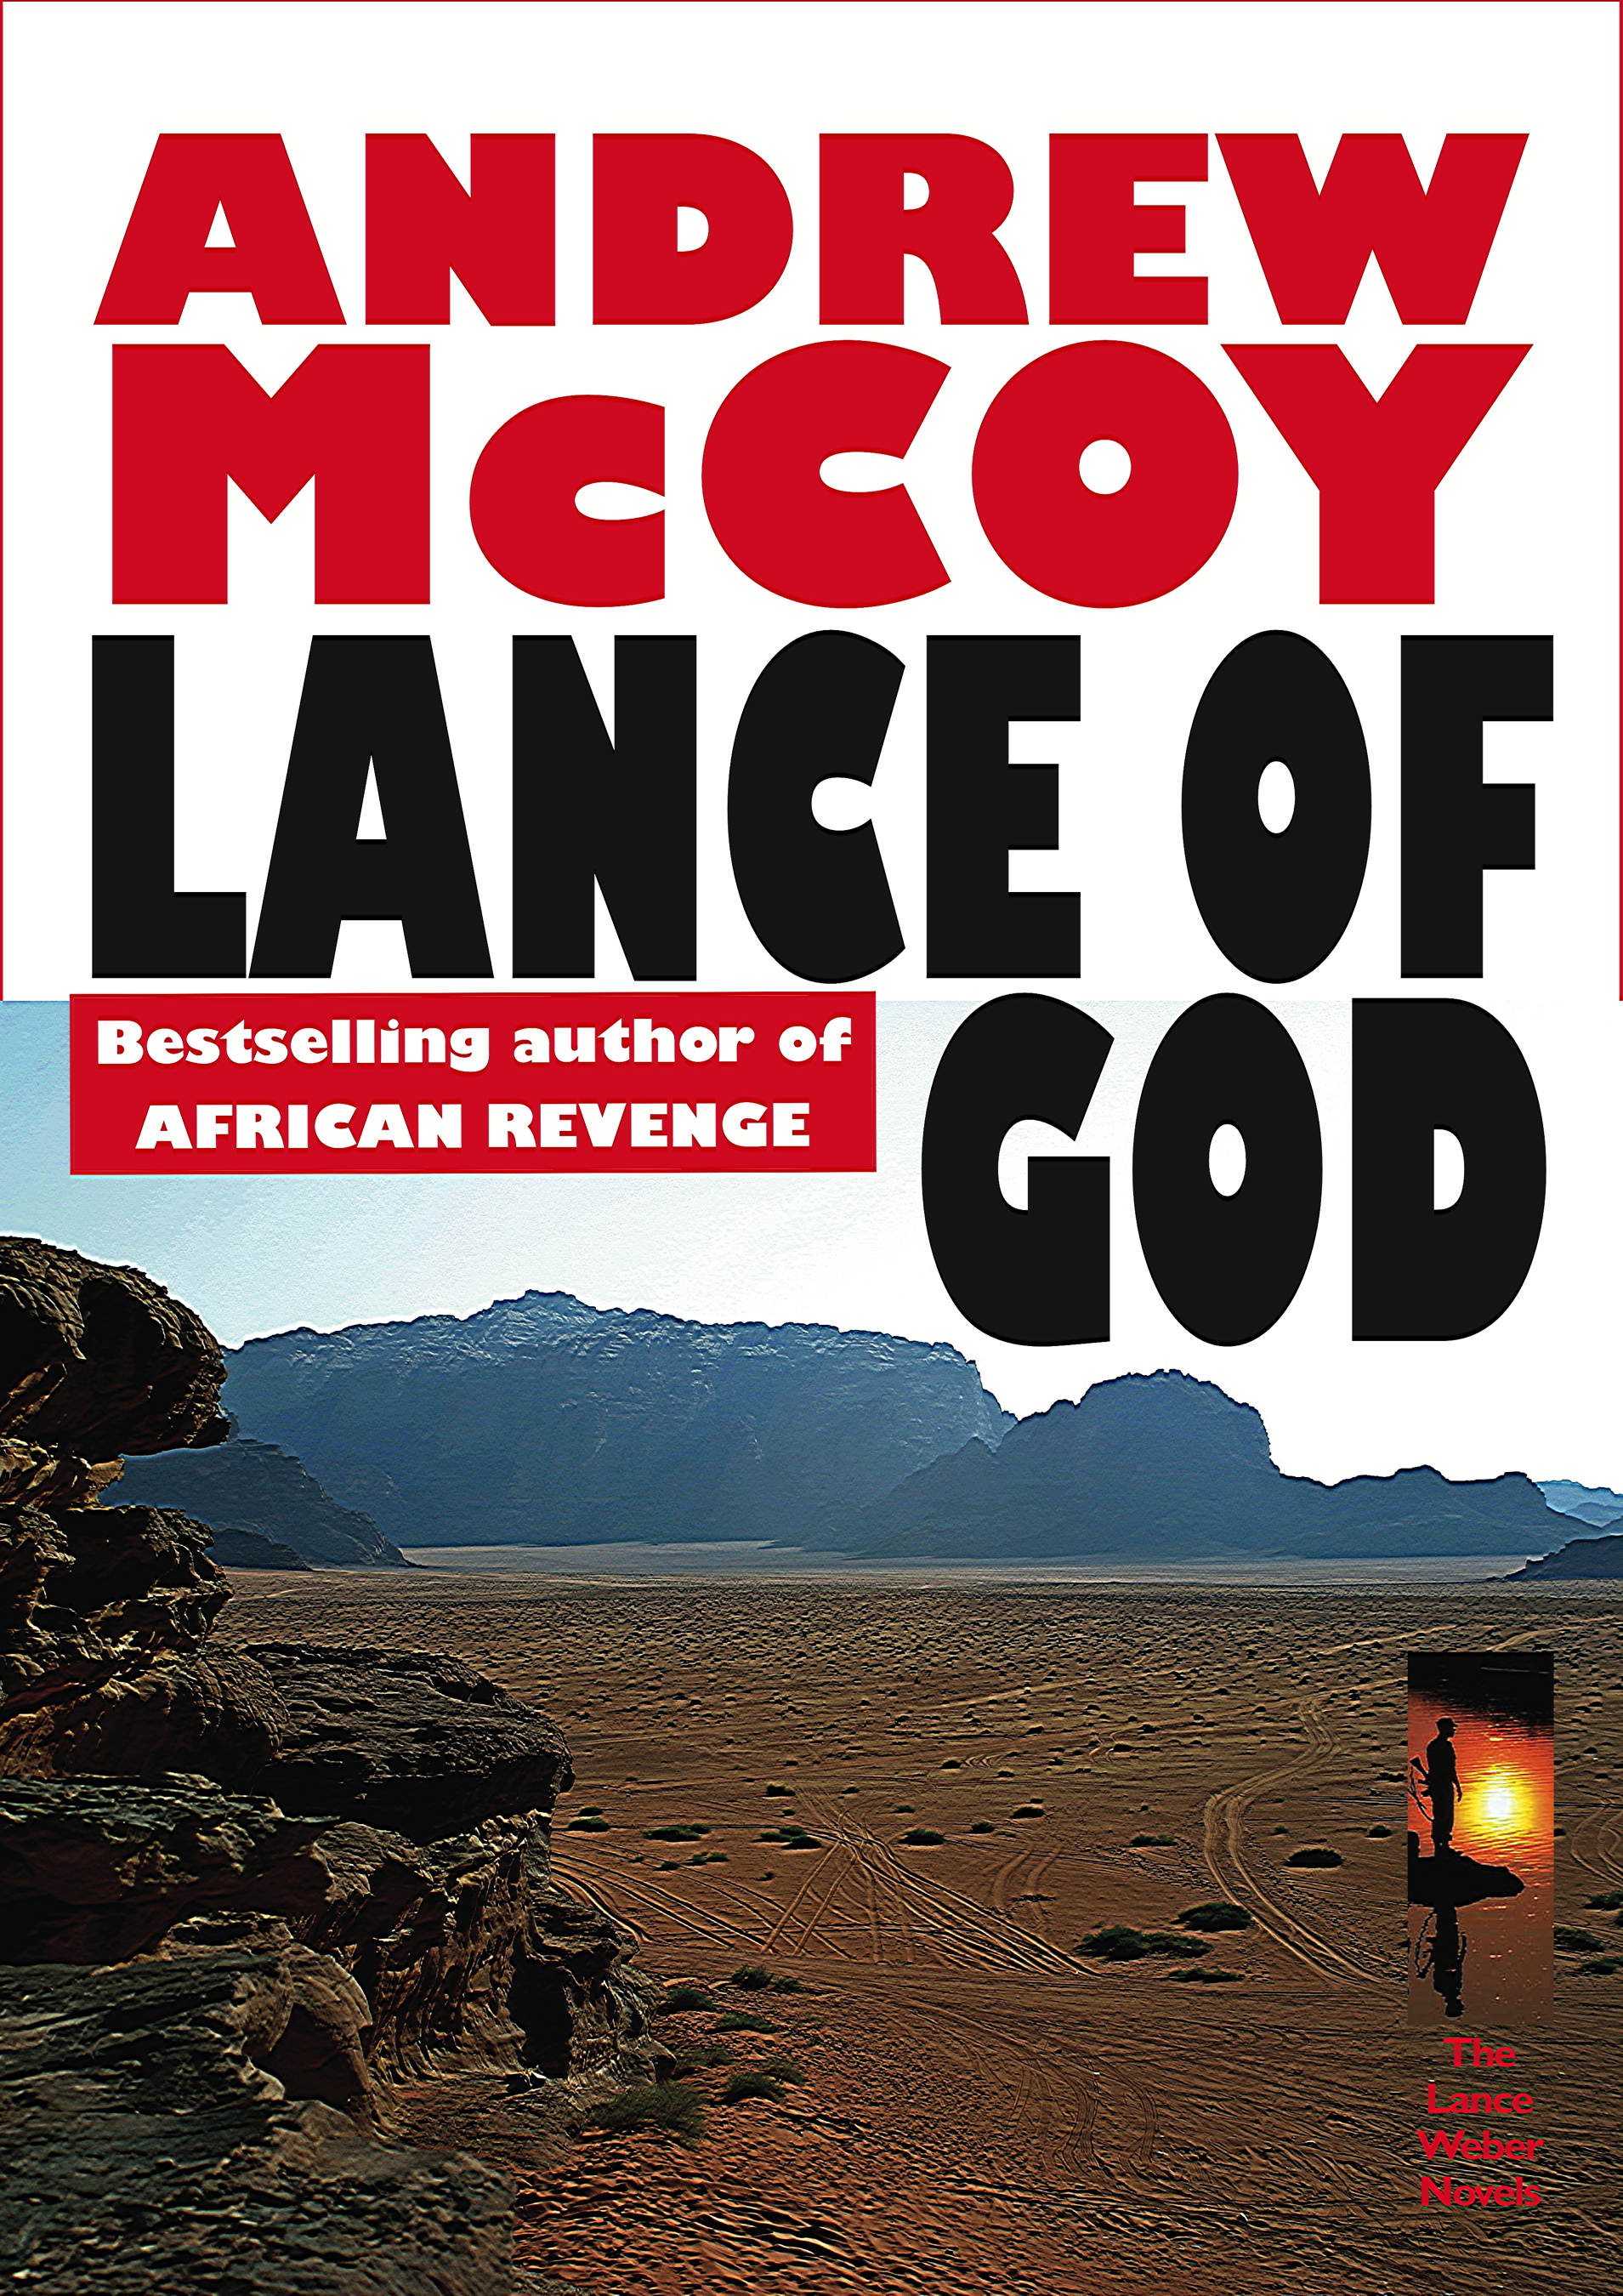 LANCE OF GOD (Lance Weber 4) by Andrew McCoy